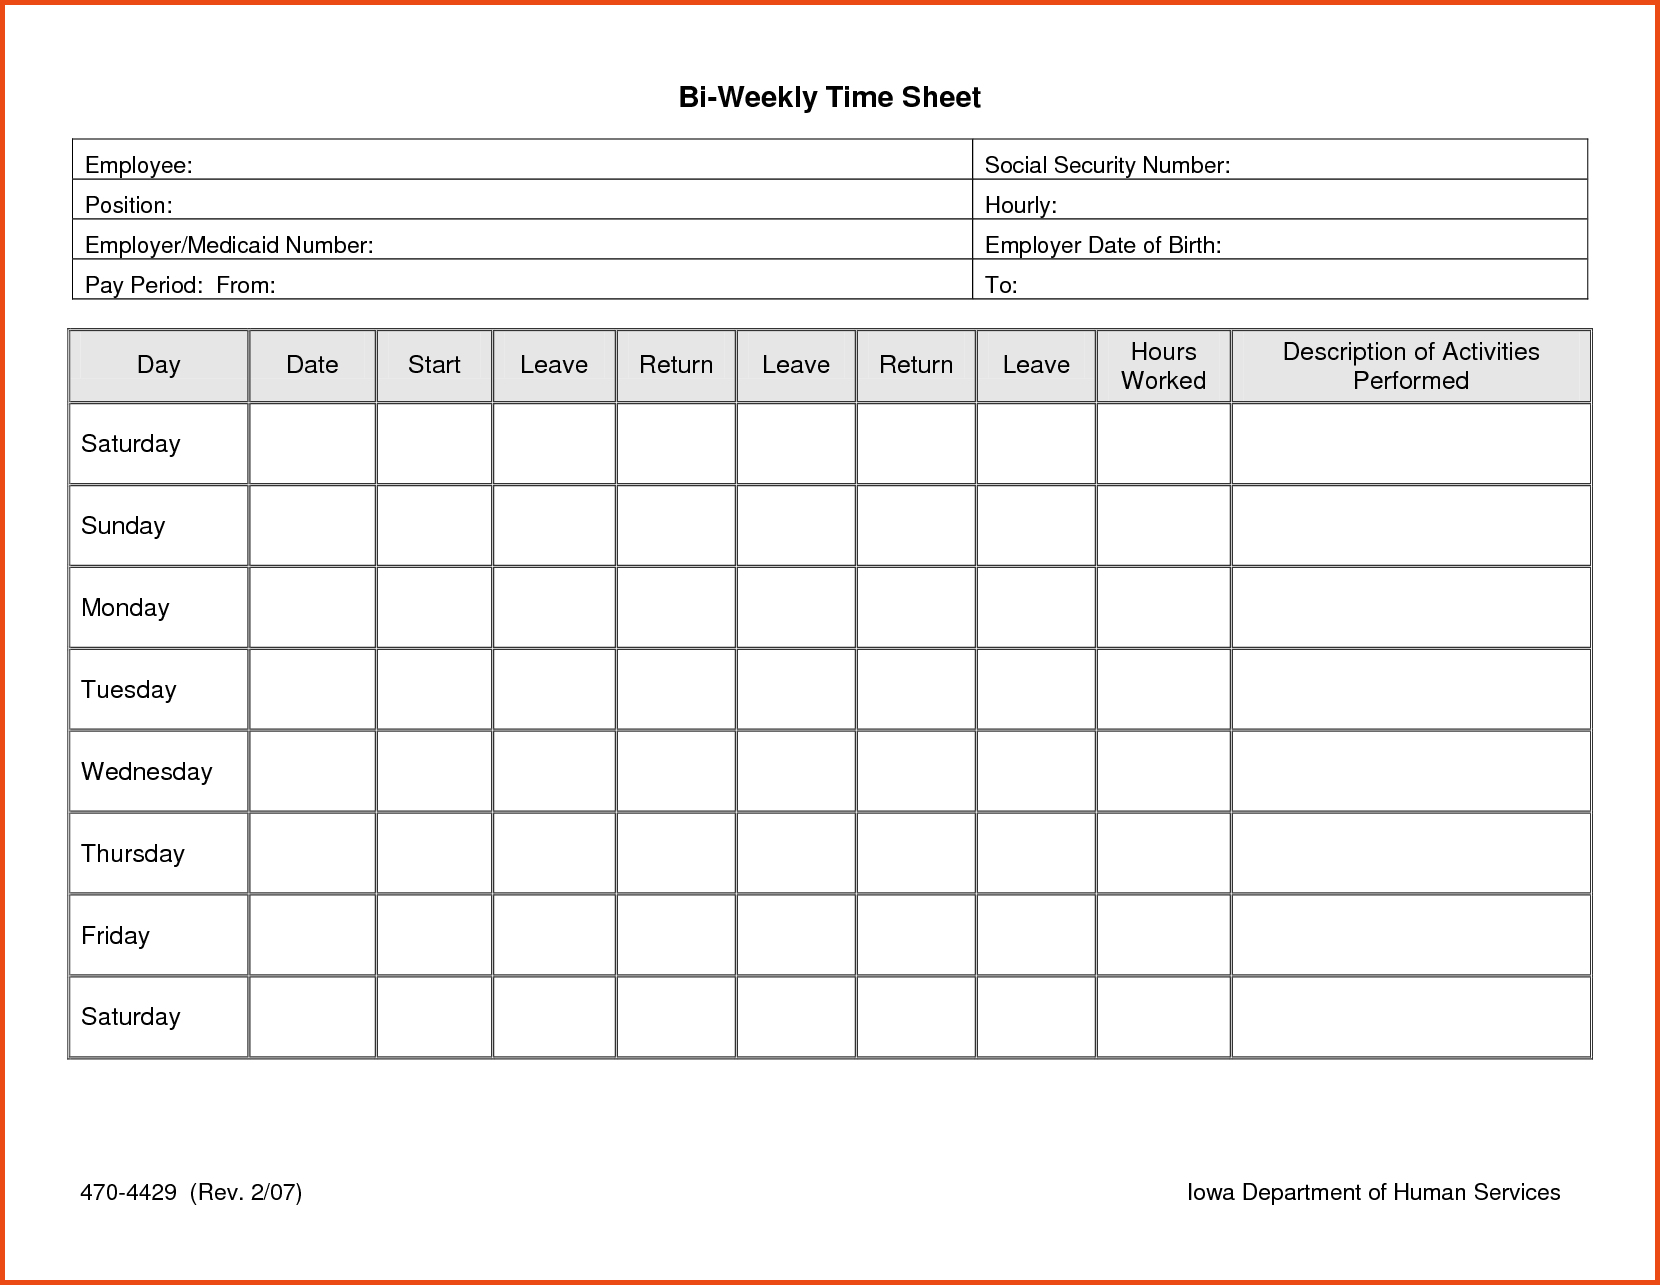 013 Time Sheet Templates Free Daily Timesheet Template Printable - Time Card Templates Free Printable